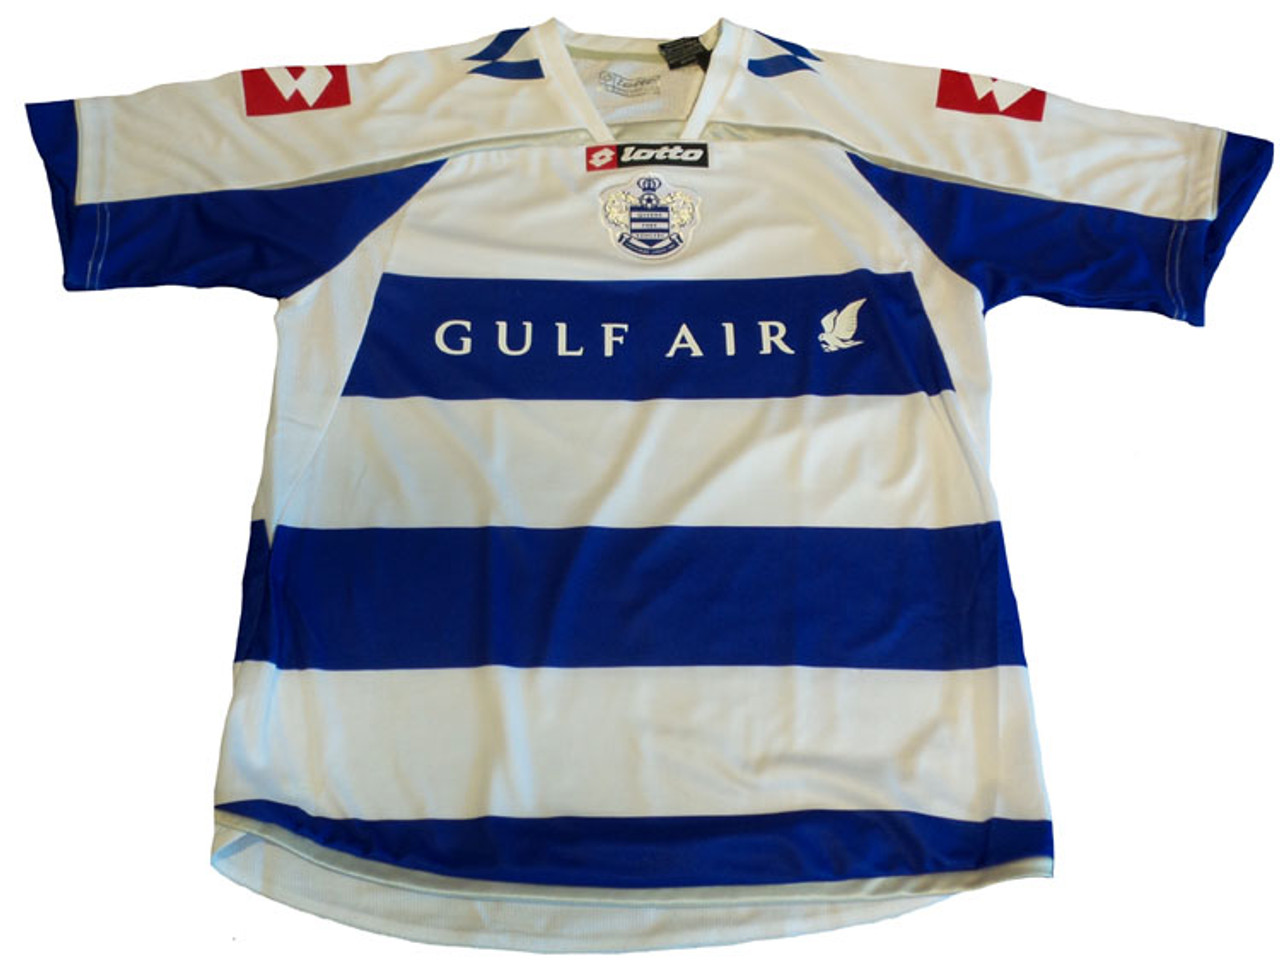 lowest price 296a8 3338e LOTTO QPR 2010 HOME JERSEY